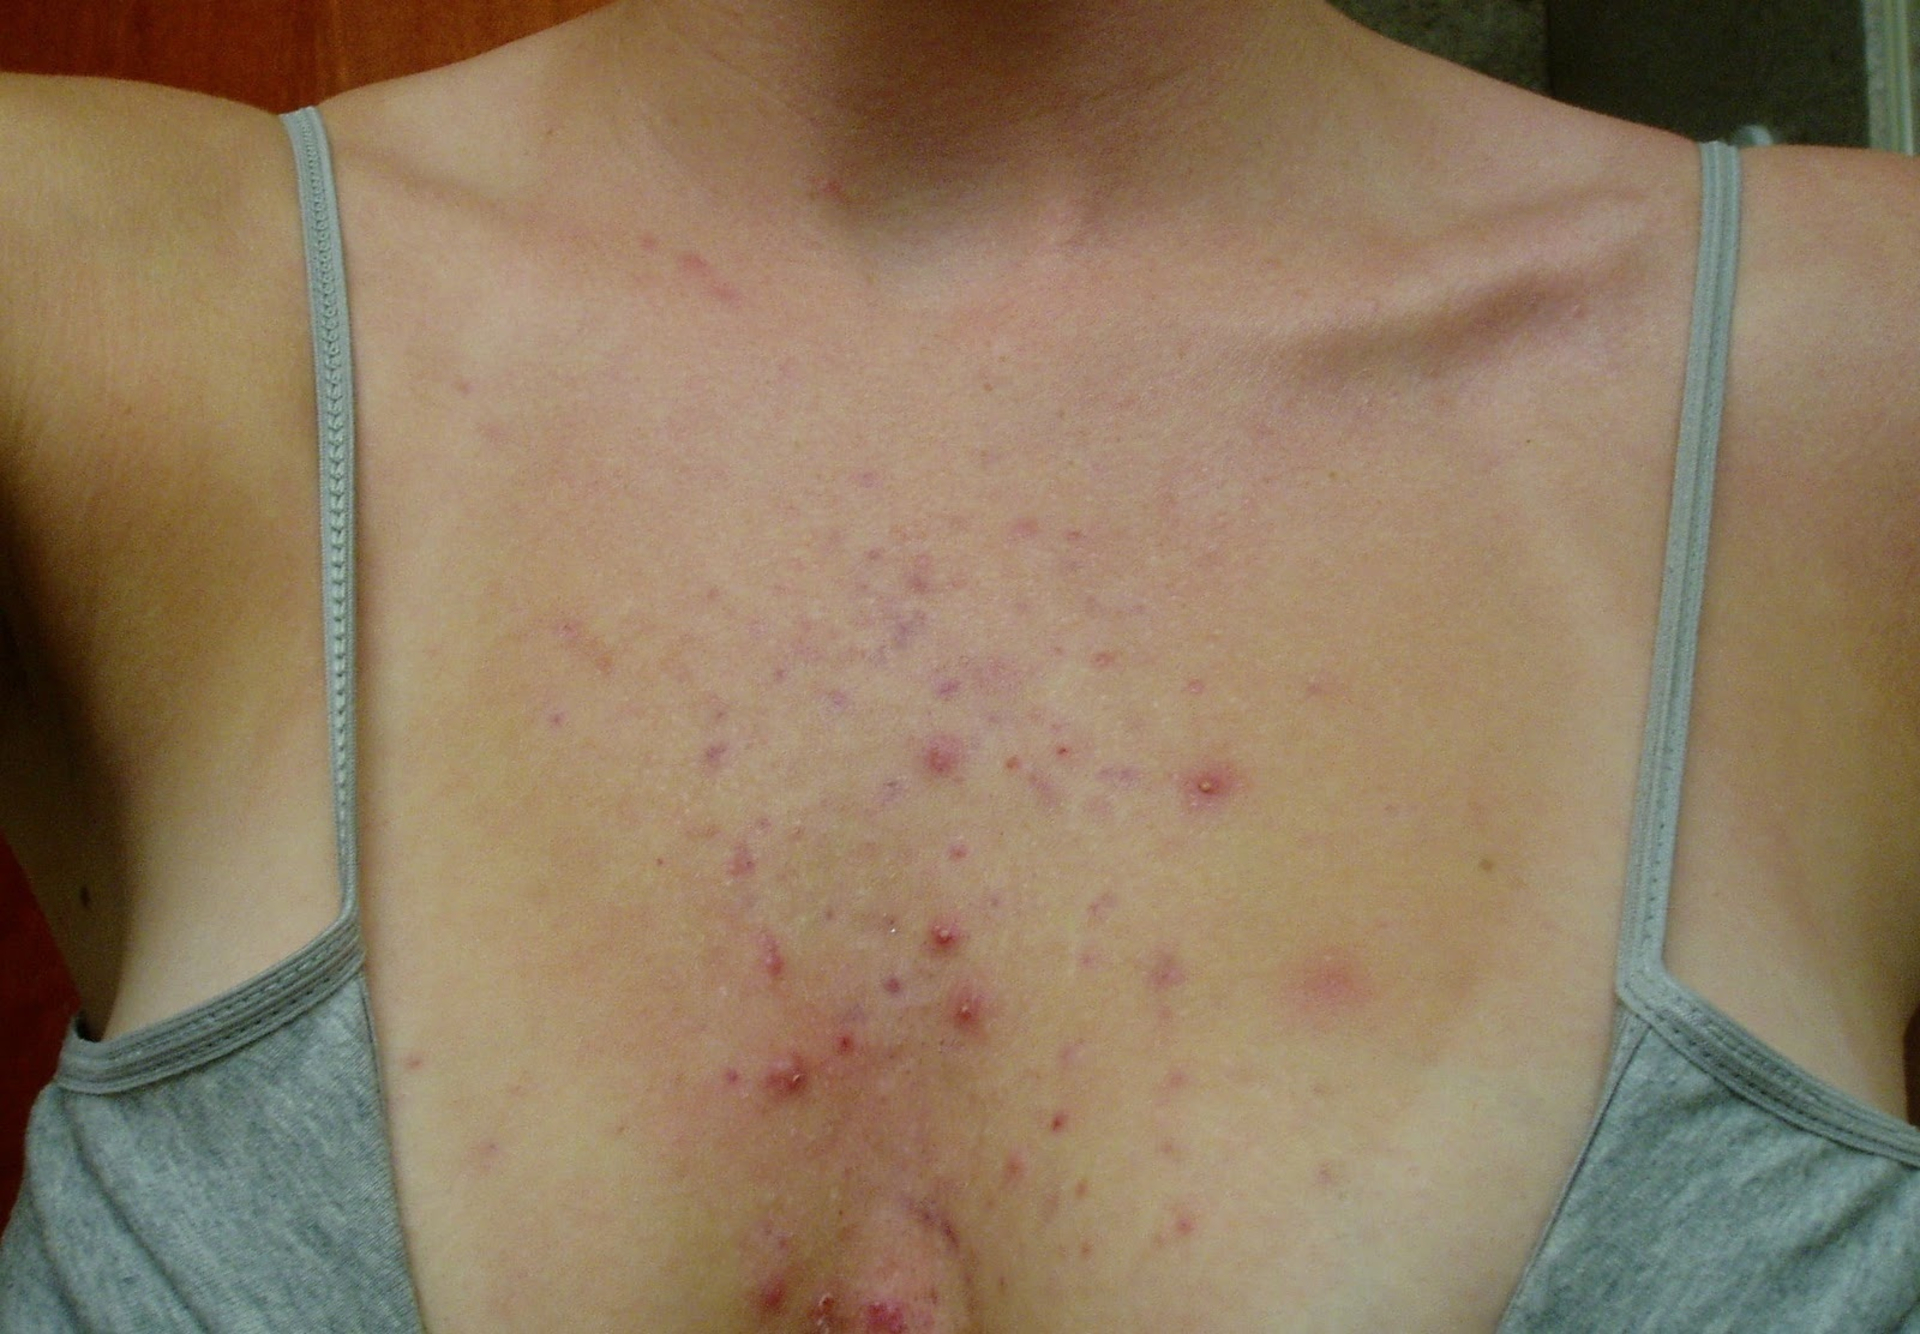 A Blush Of Pink - acne on the chest